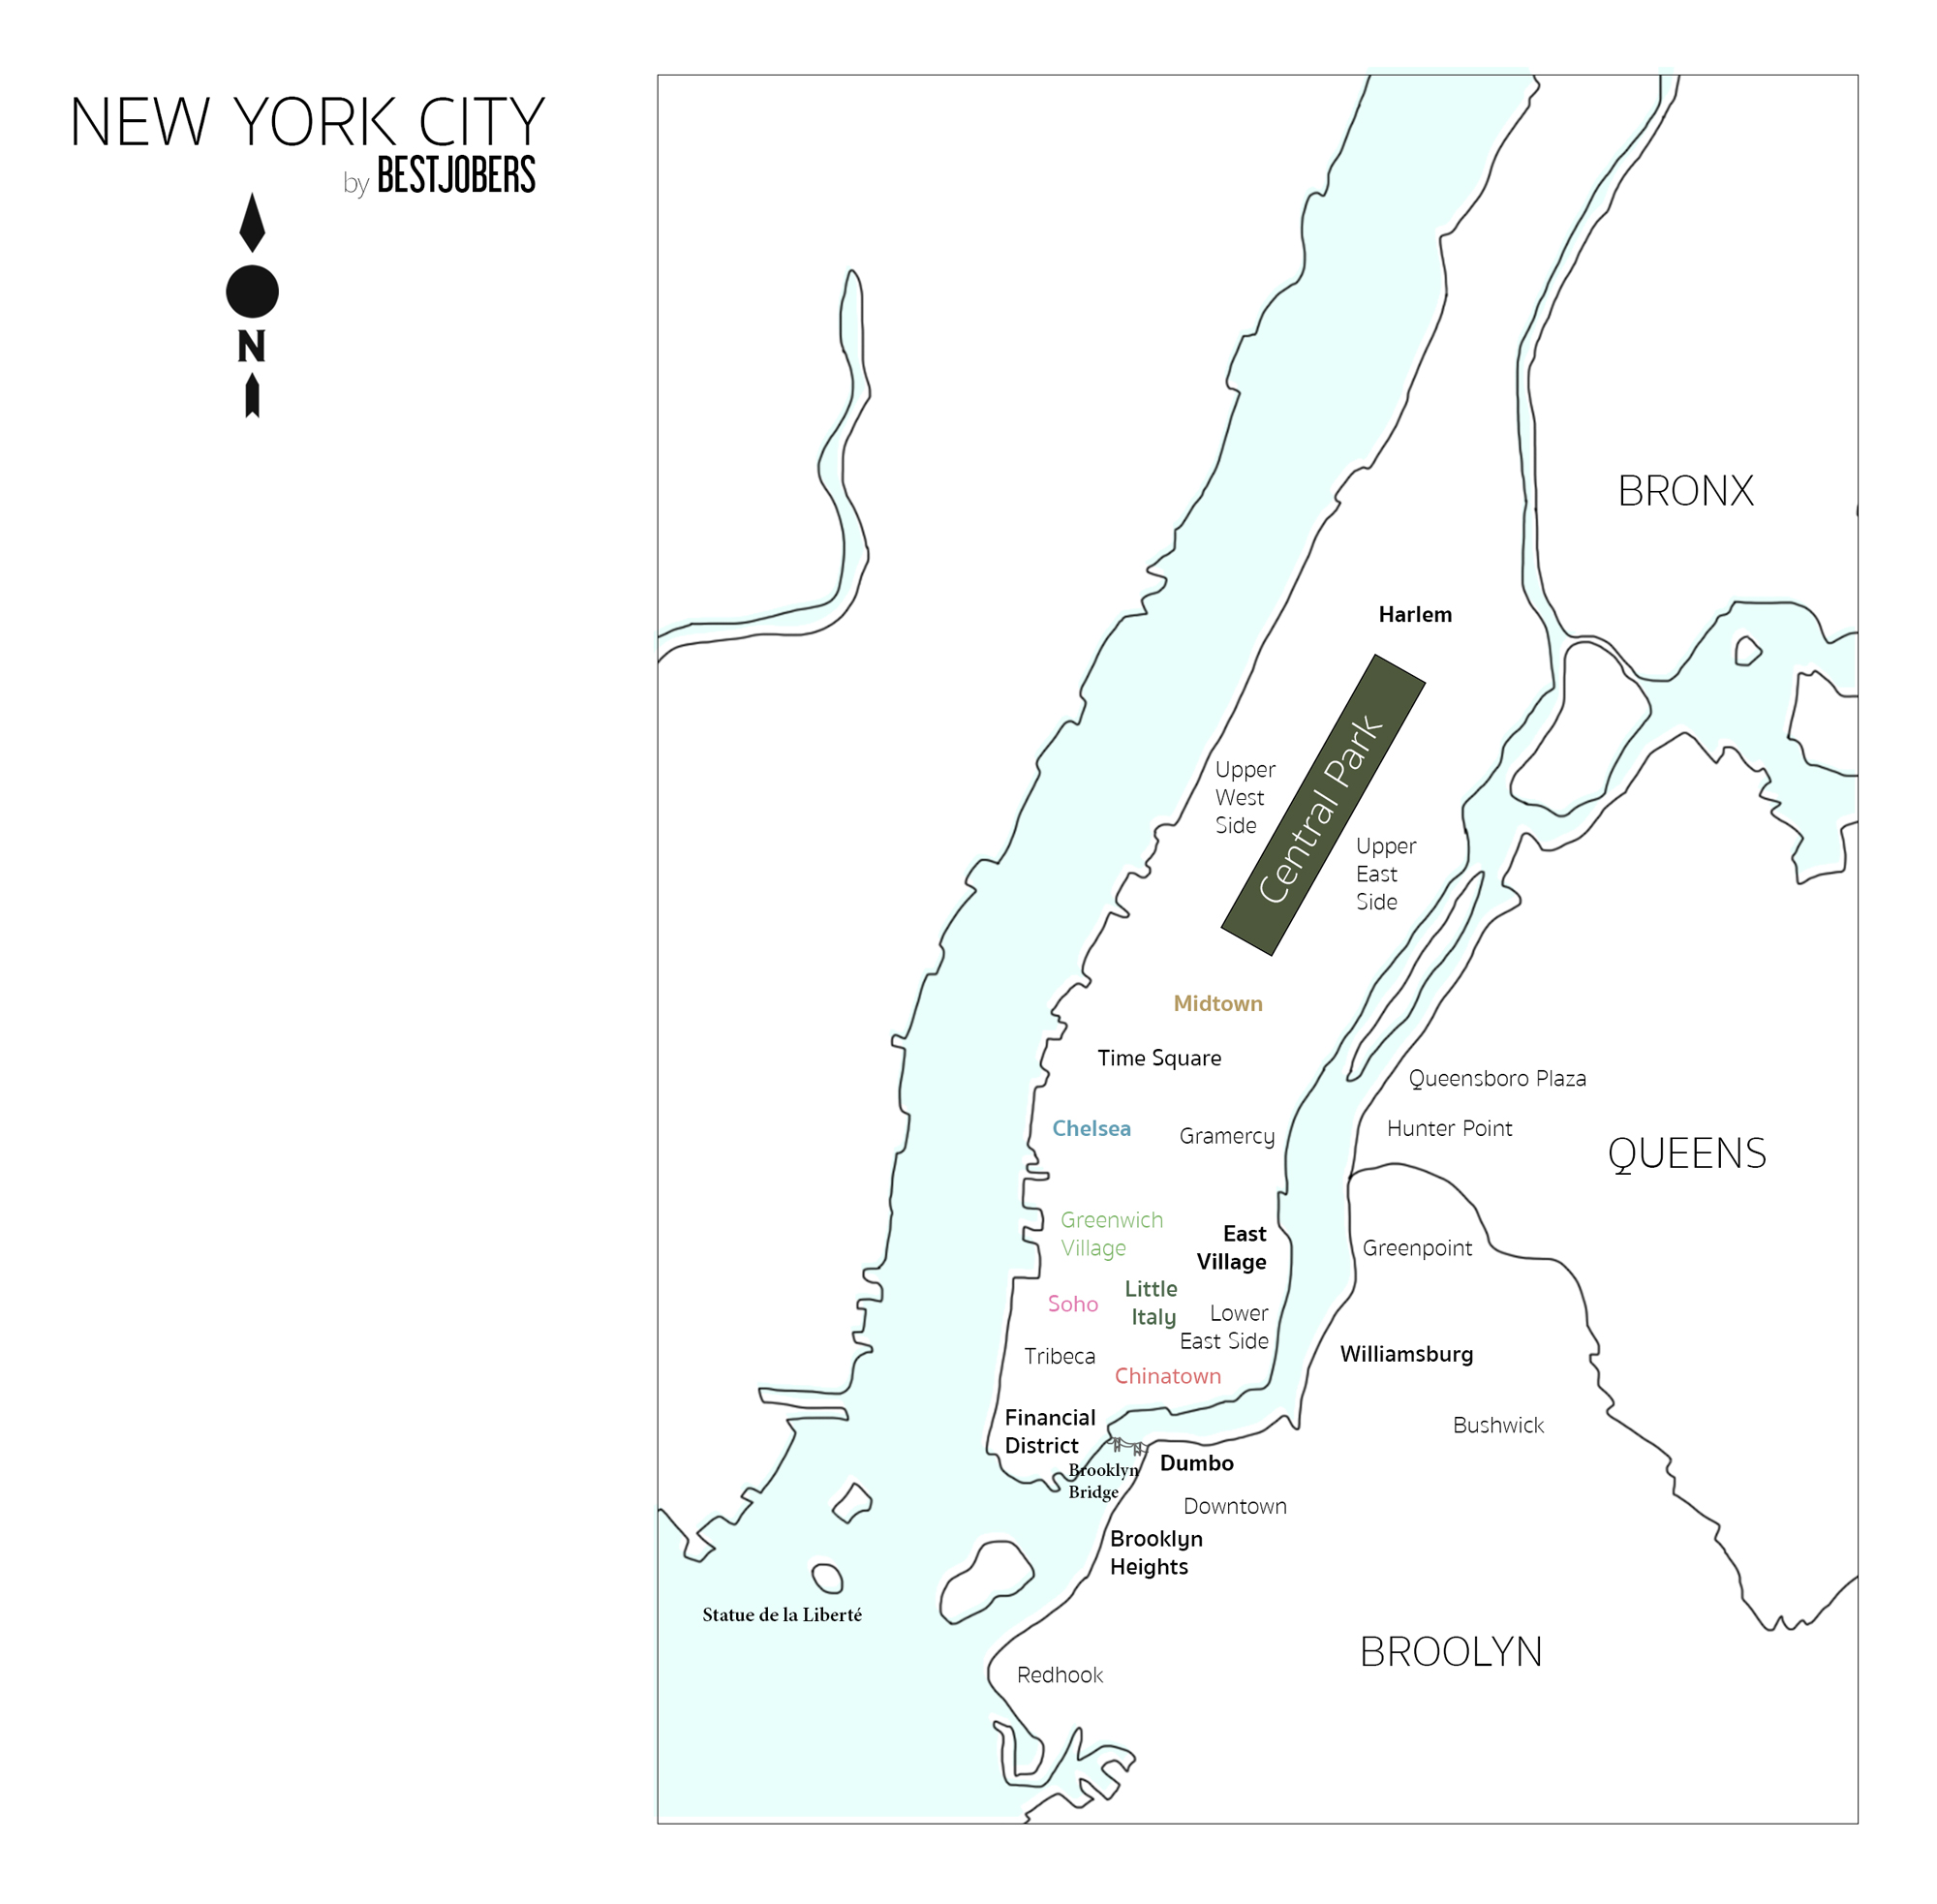 Carte, Les quartiers de NEW YORK by Bestjobers